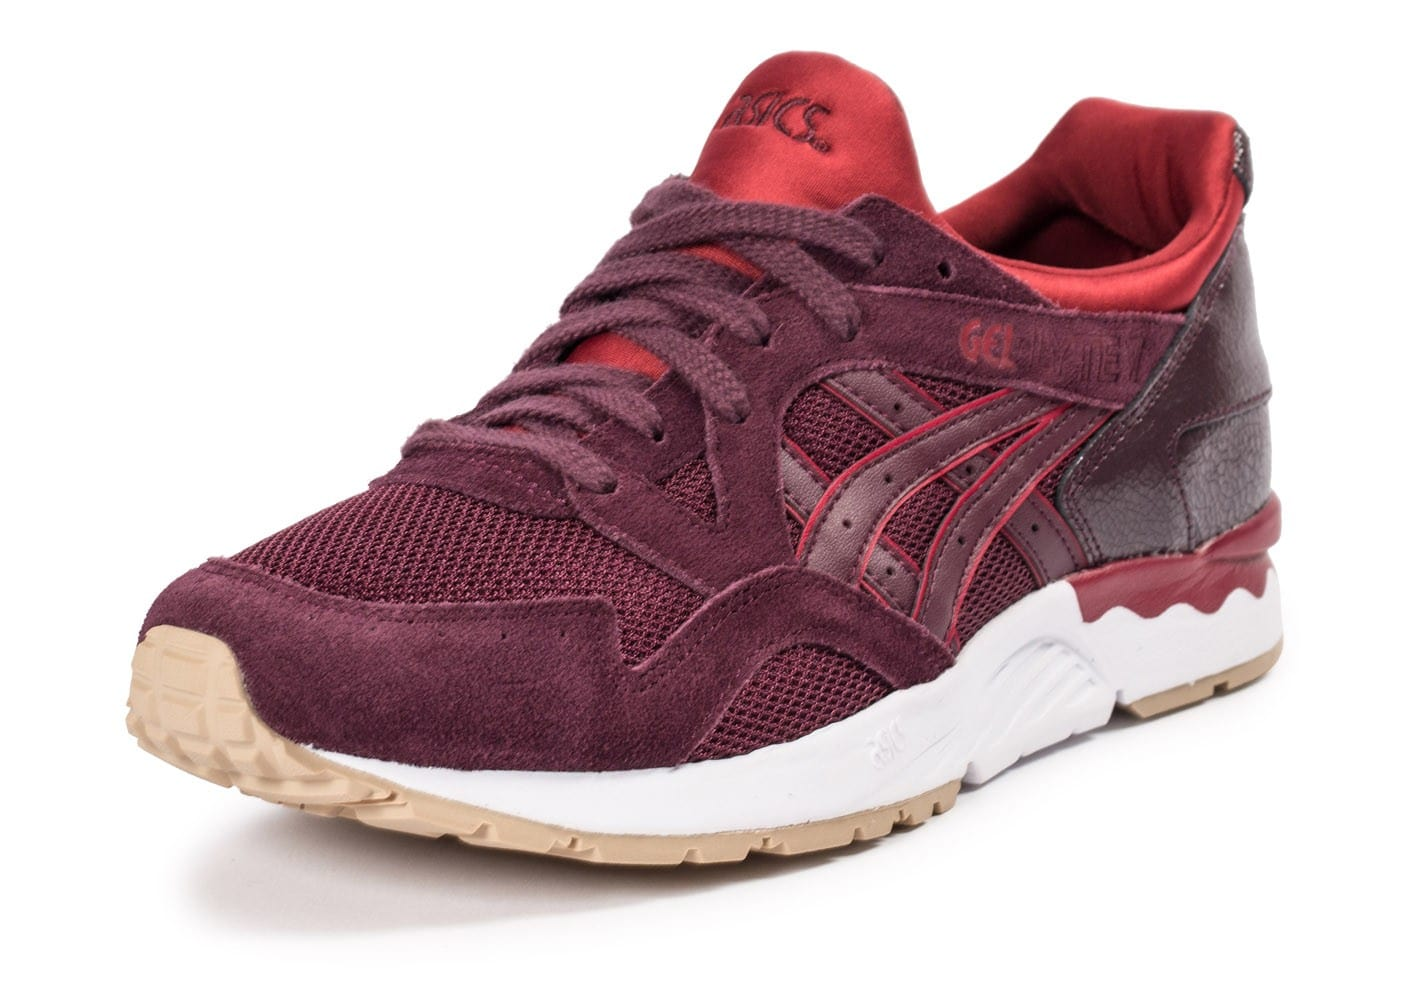 asics gel lyte v core plus bordeaux chaussures homme chausport. Black Bedroom Furniture Sets. Home Design Ideas